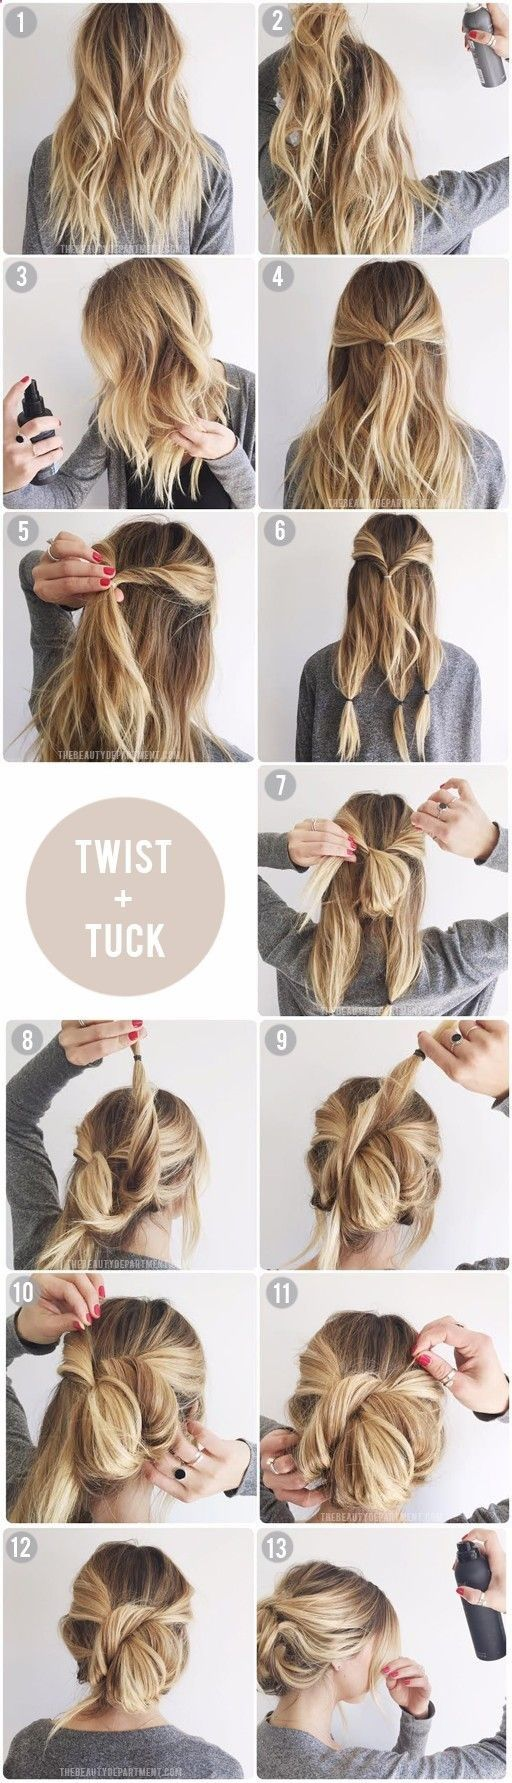 Twist Tuck Messy Updo 5 Messy Updos For Long Hair Check It Out At Makeuptutorials C Hair Styles Long Hair Styles Hair Updos